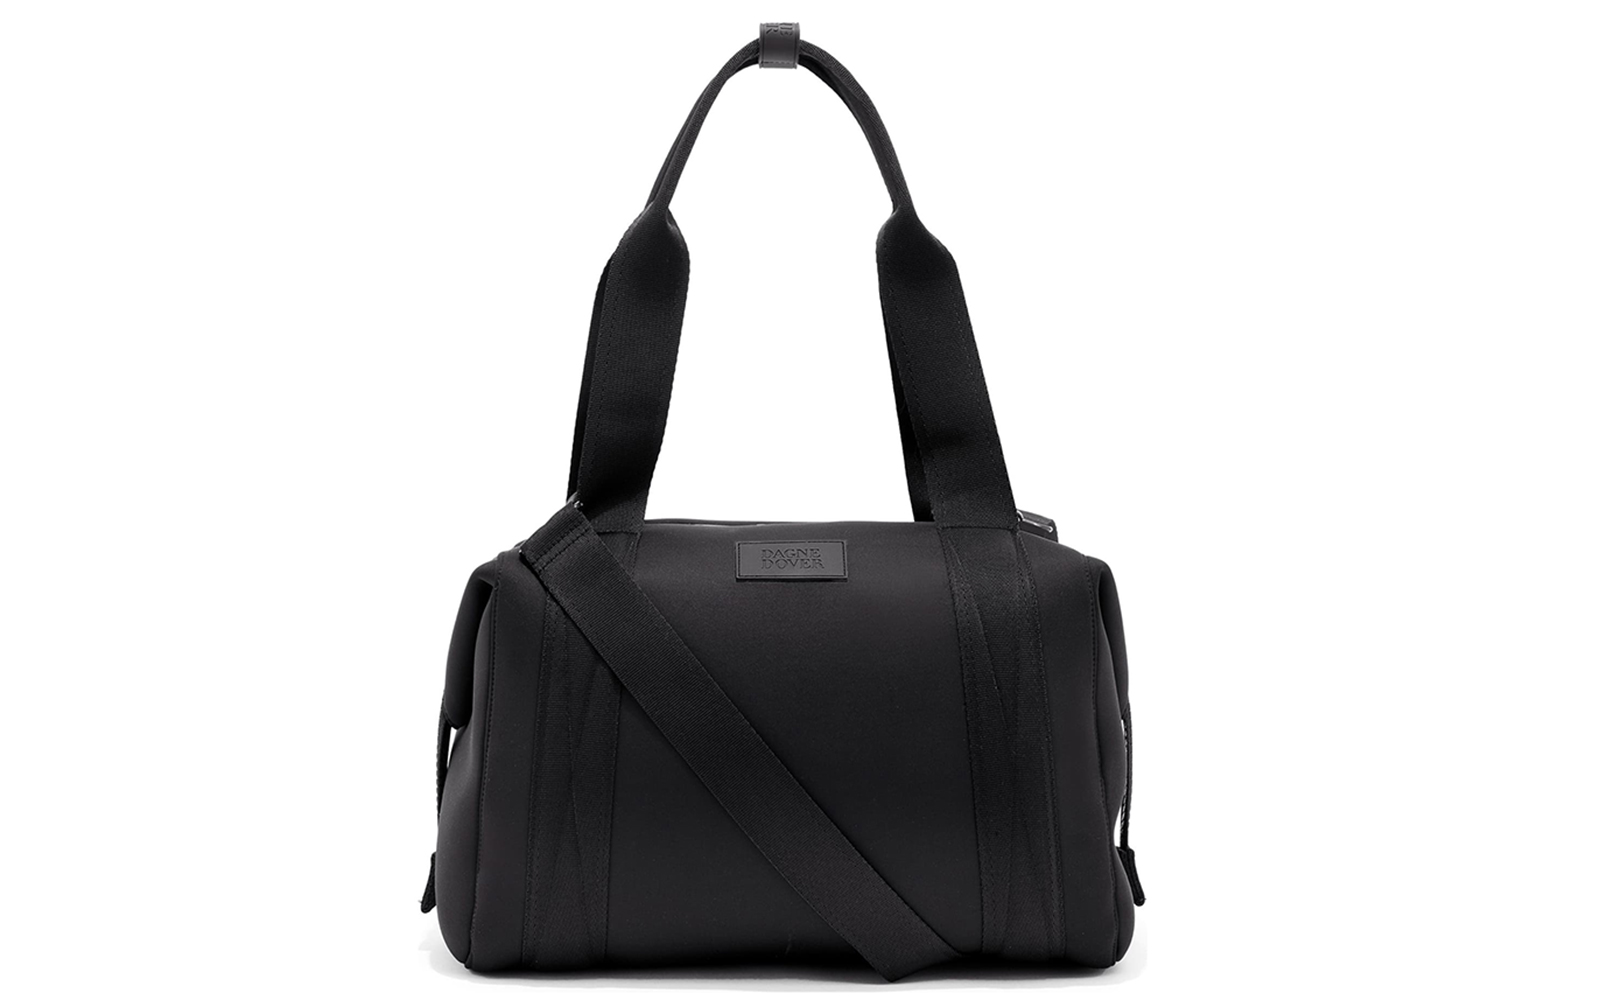 Dagne Dover Medium Landon Neoprene Carryall Duffle Bag